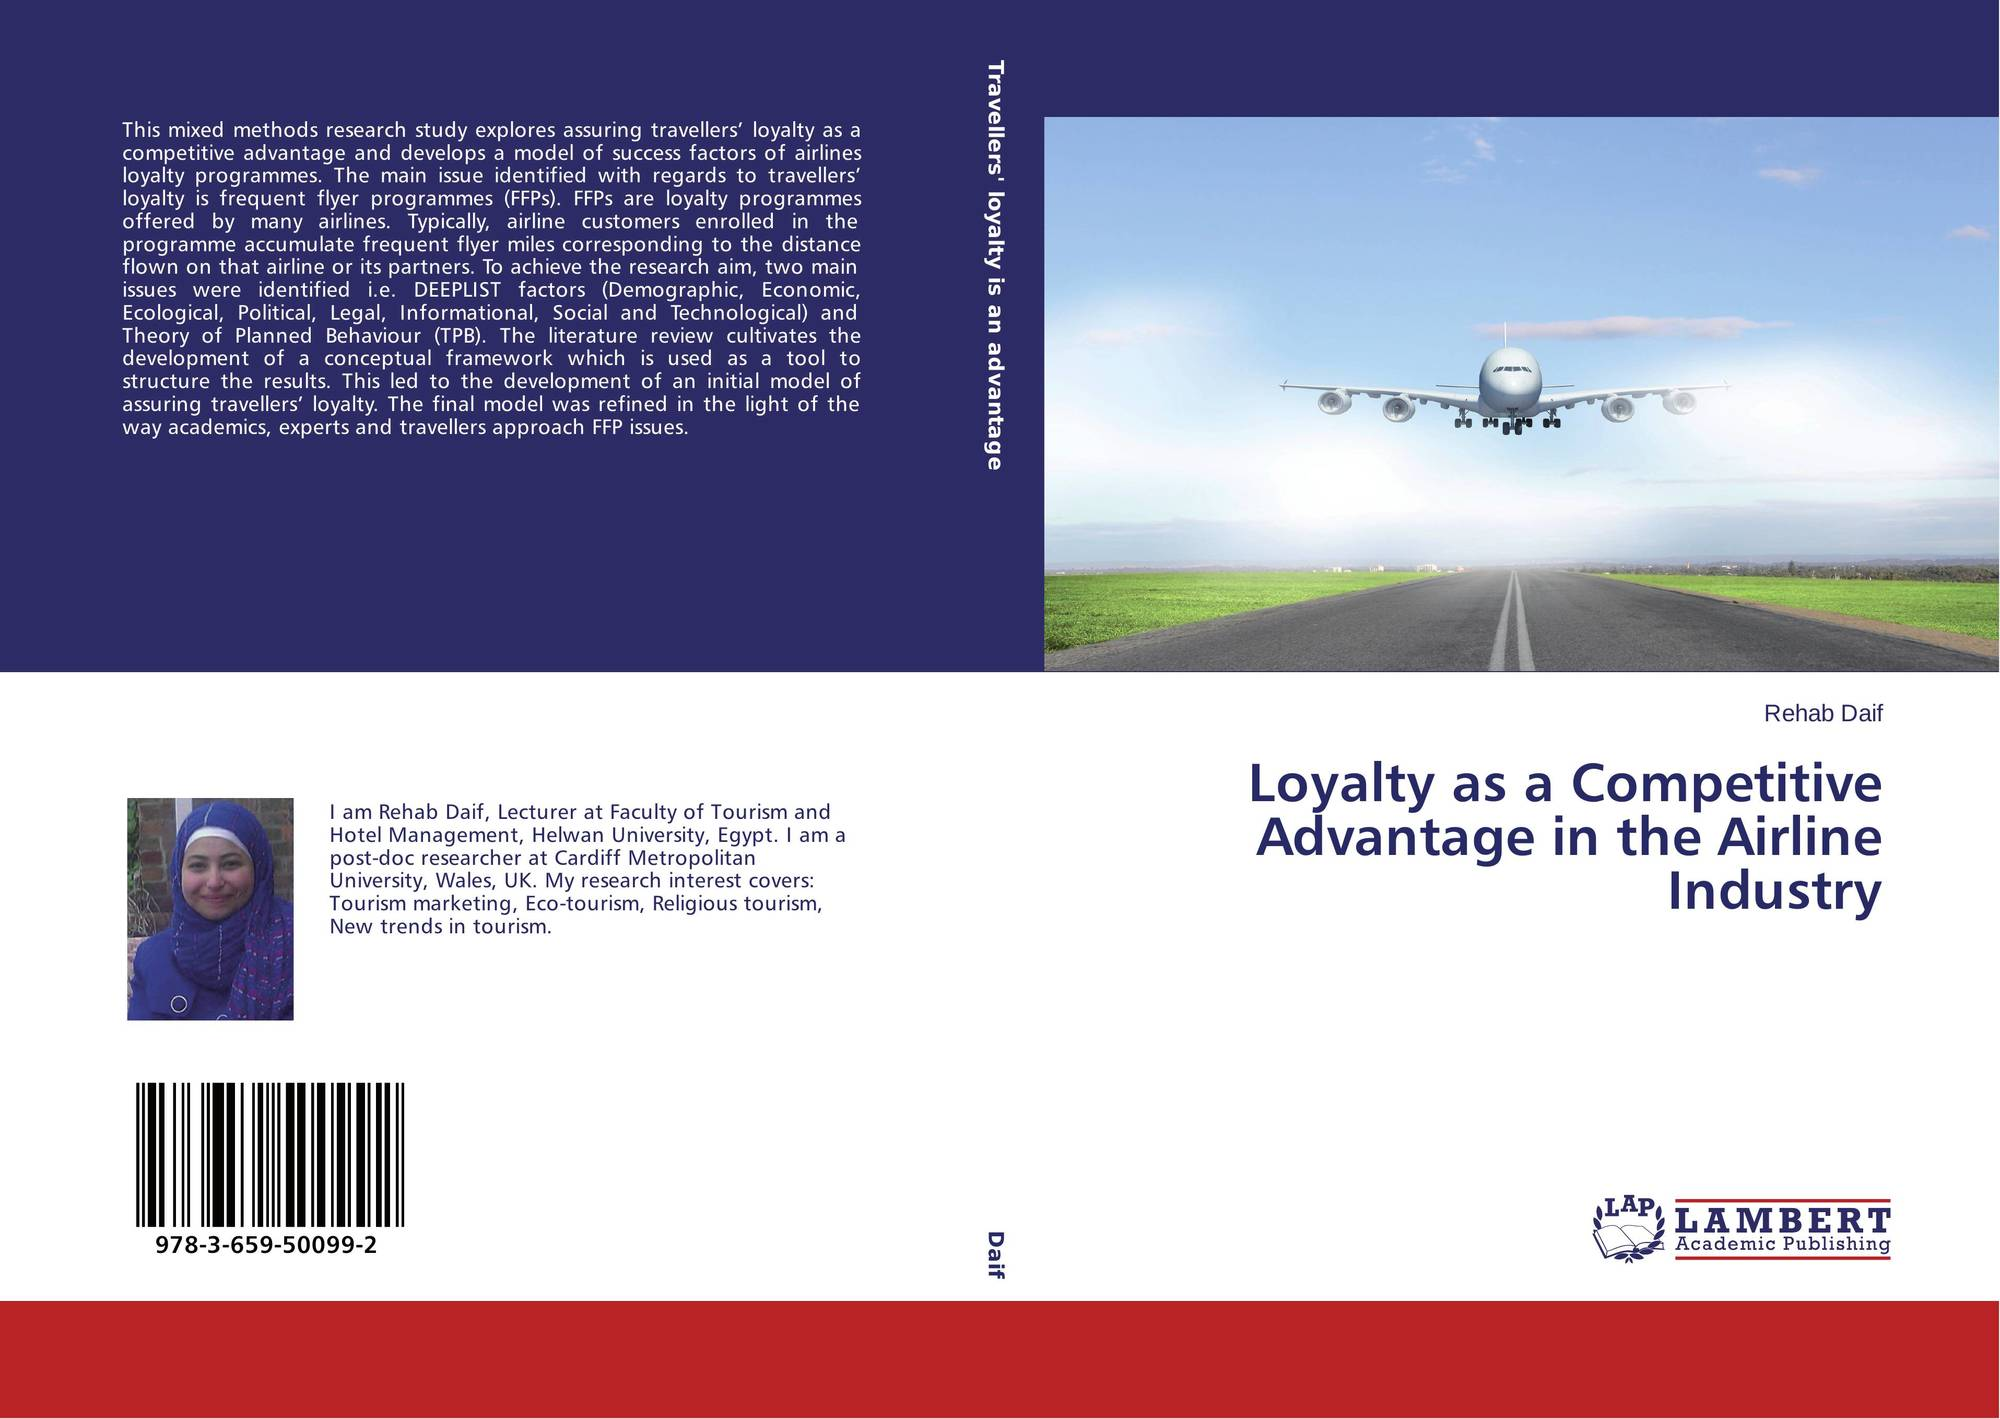 Loyalty as a Competitive Advantage in the Airline Industry, 978-3